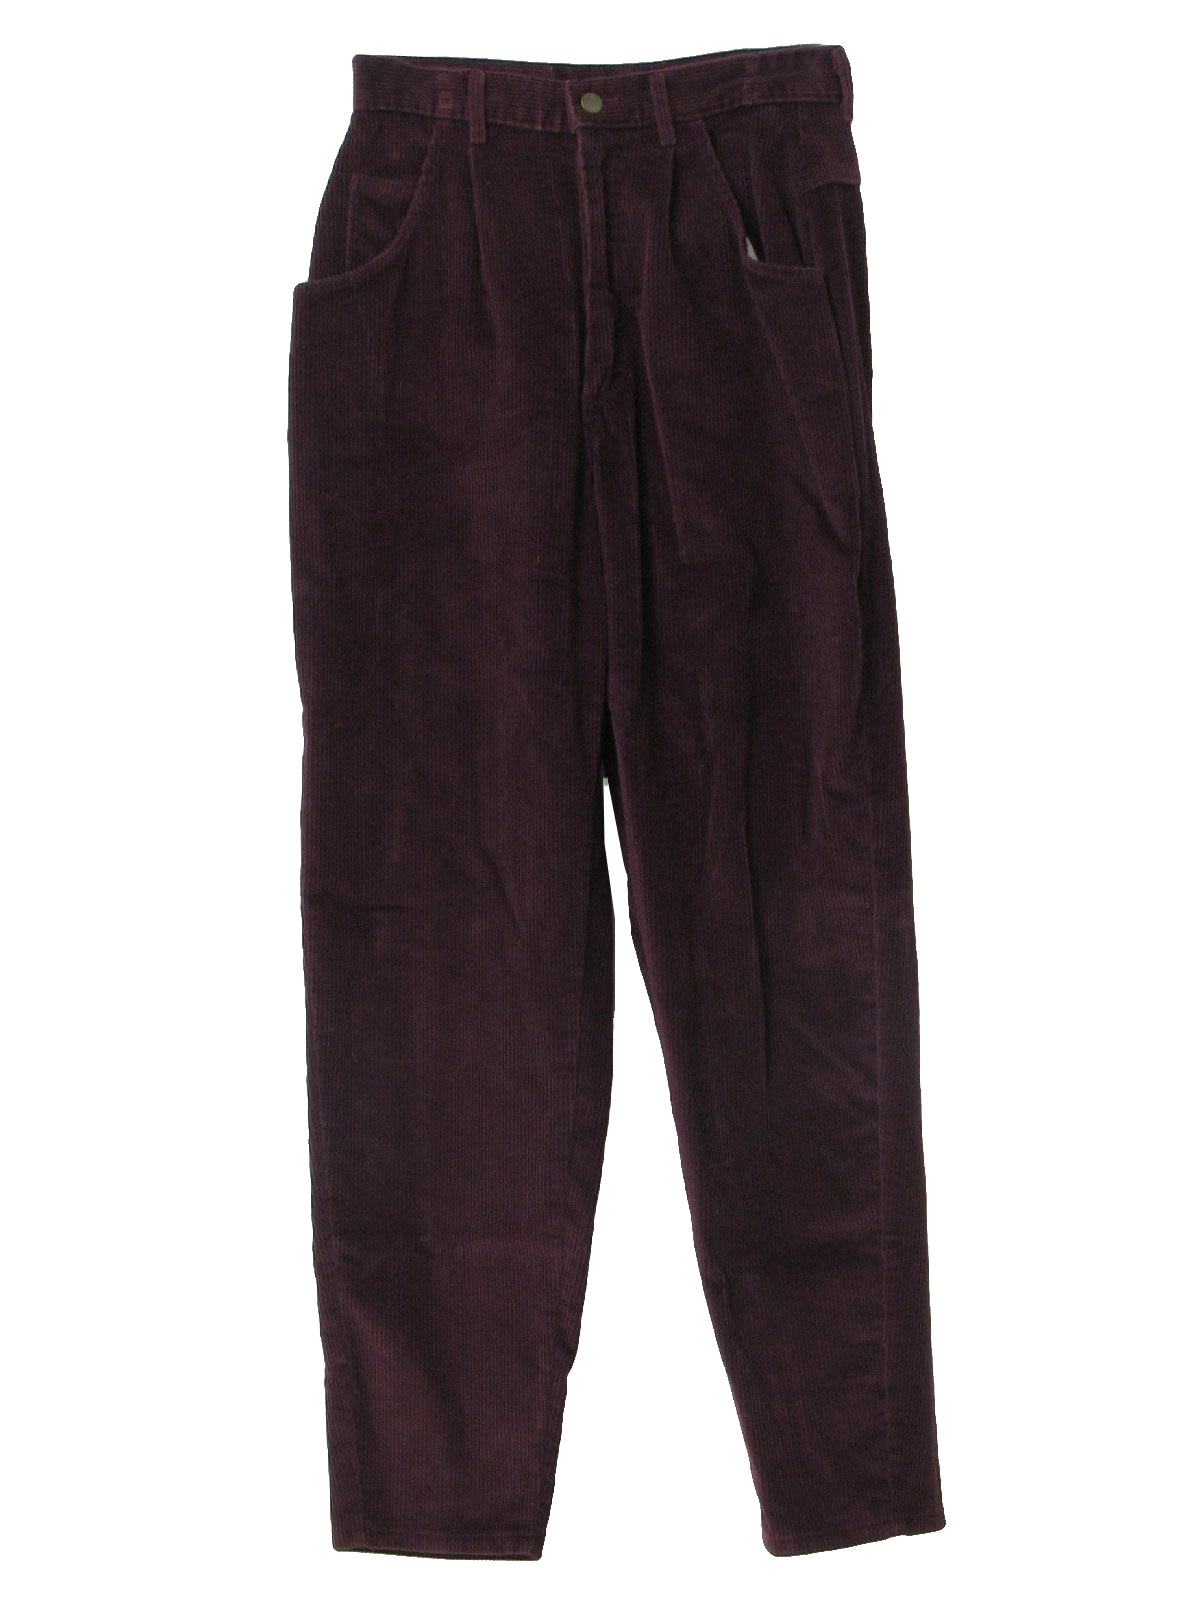 Unique Lucky Brand Corduroy Pants Women39s 427